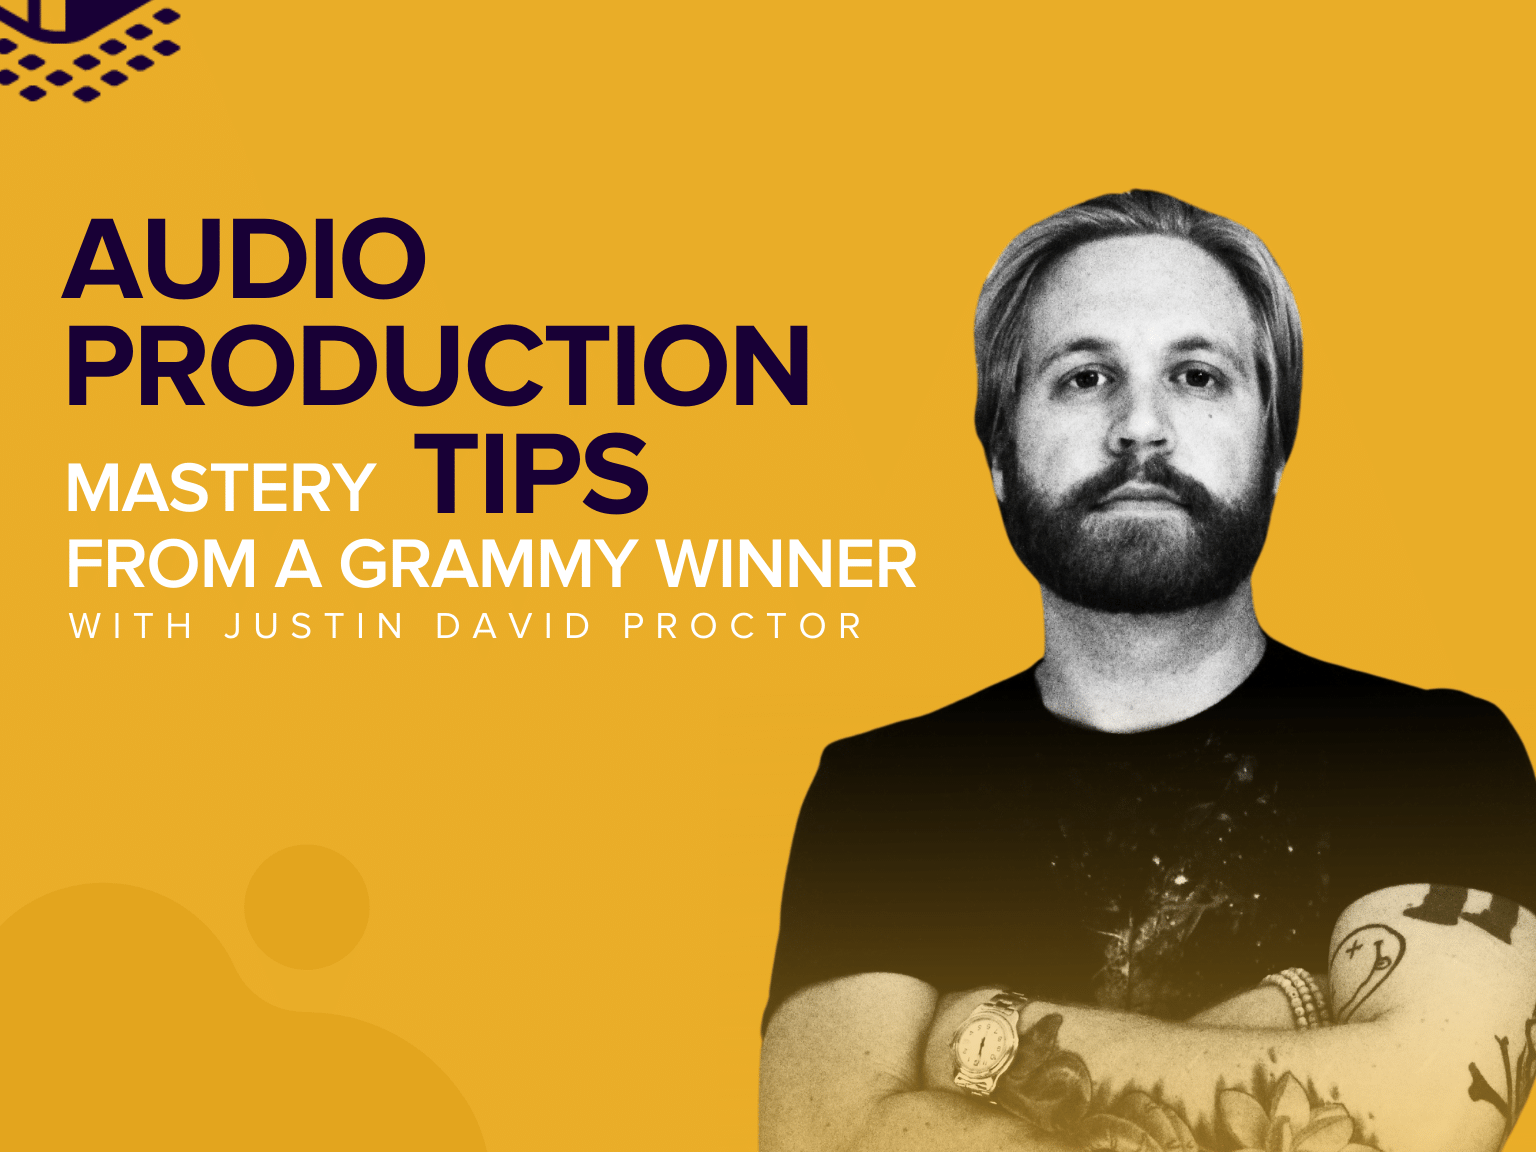 Audio Production Mastery Tips from a Grammy Winner   Justin David Proctor